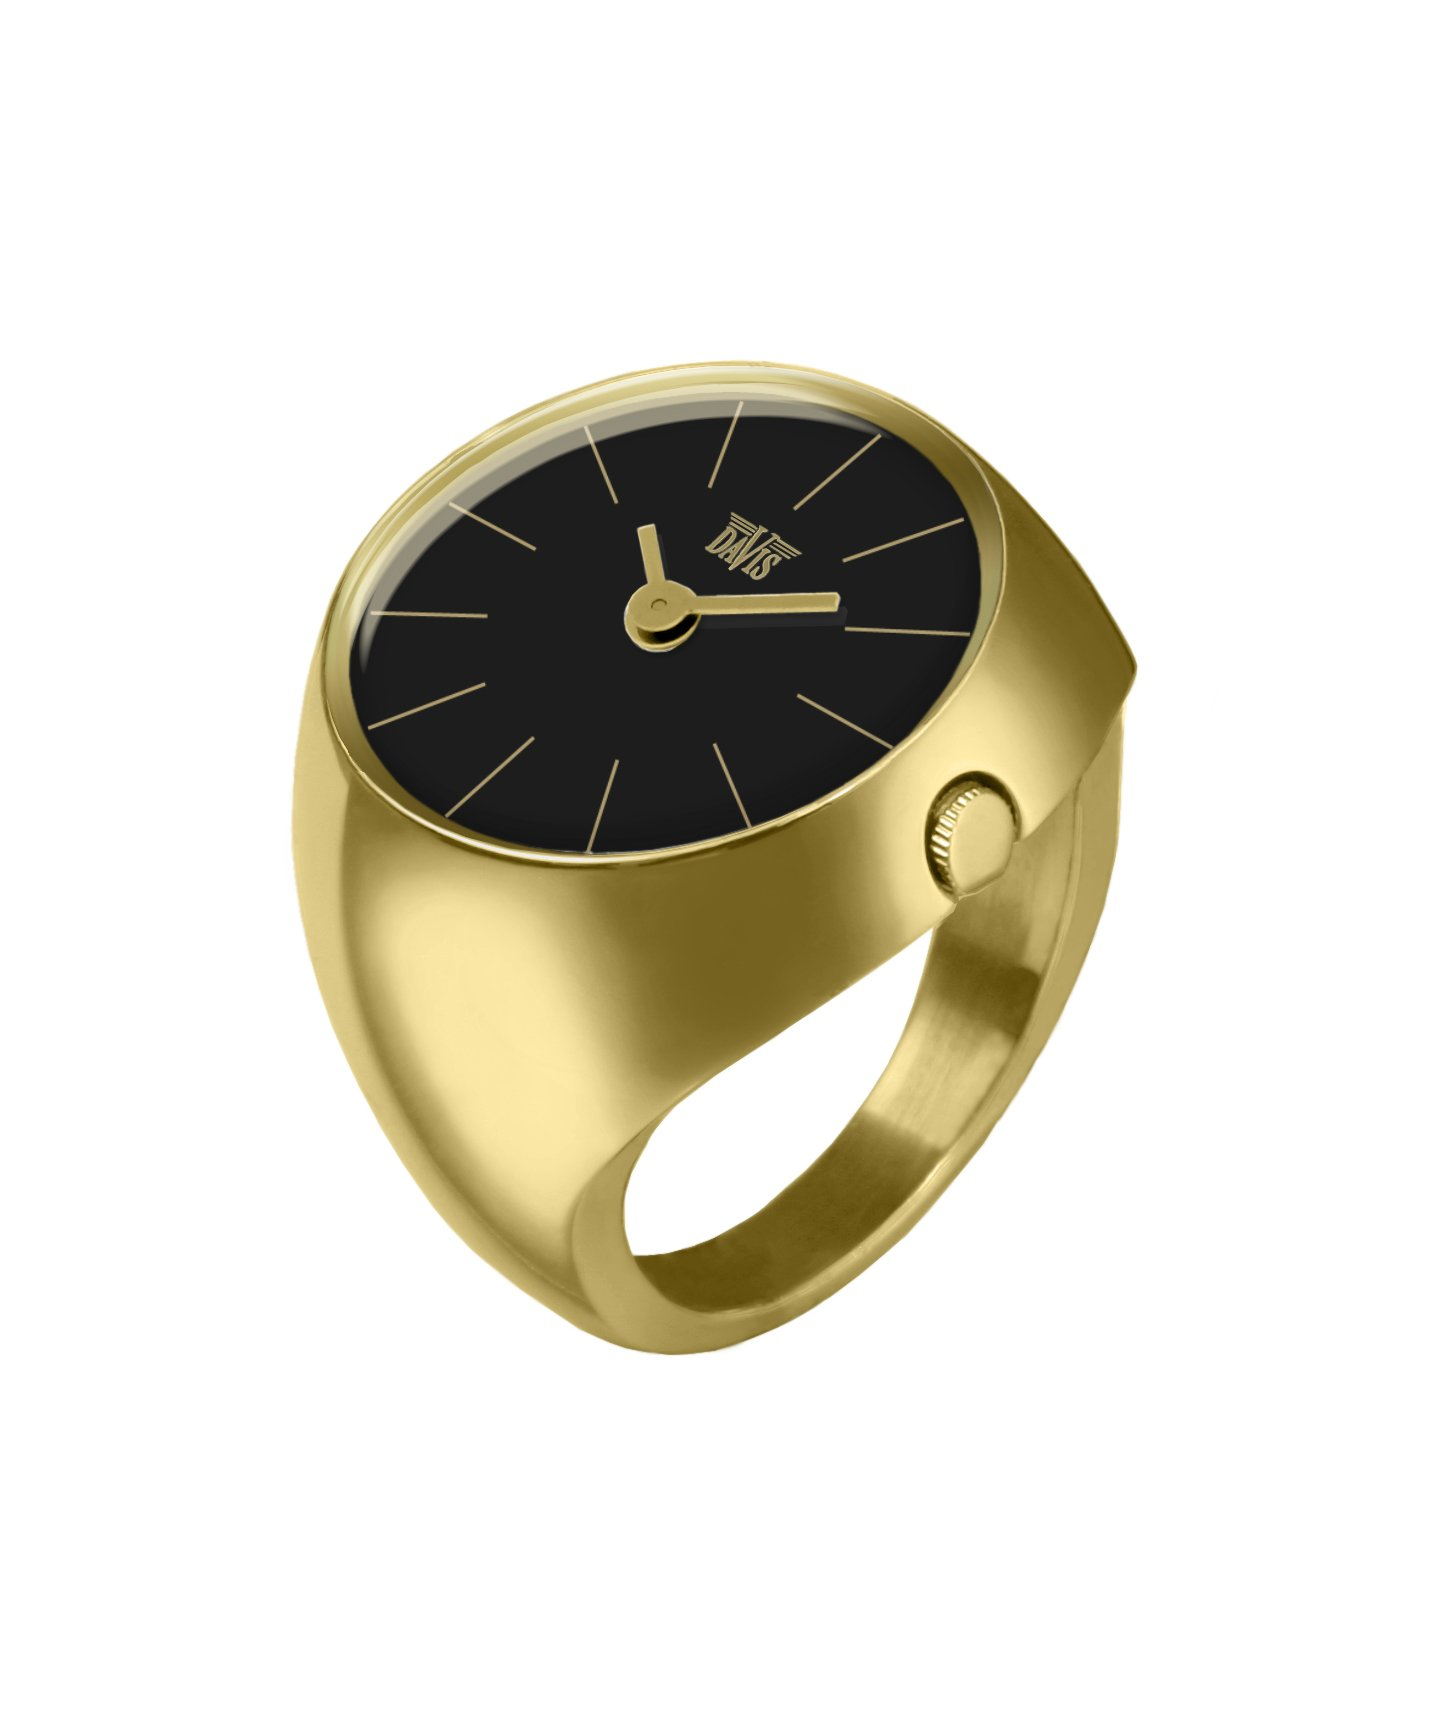 Davis 2005L - Womens Finger Ring Watch Yellow Gold Domed Sapphire Glass Black Dial Index baton Size 58 by Davis